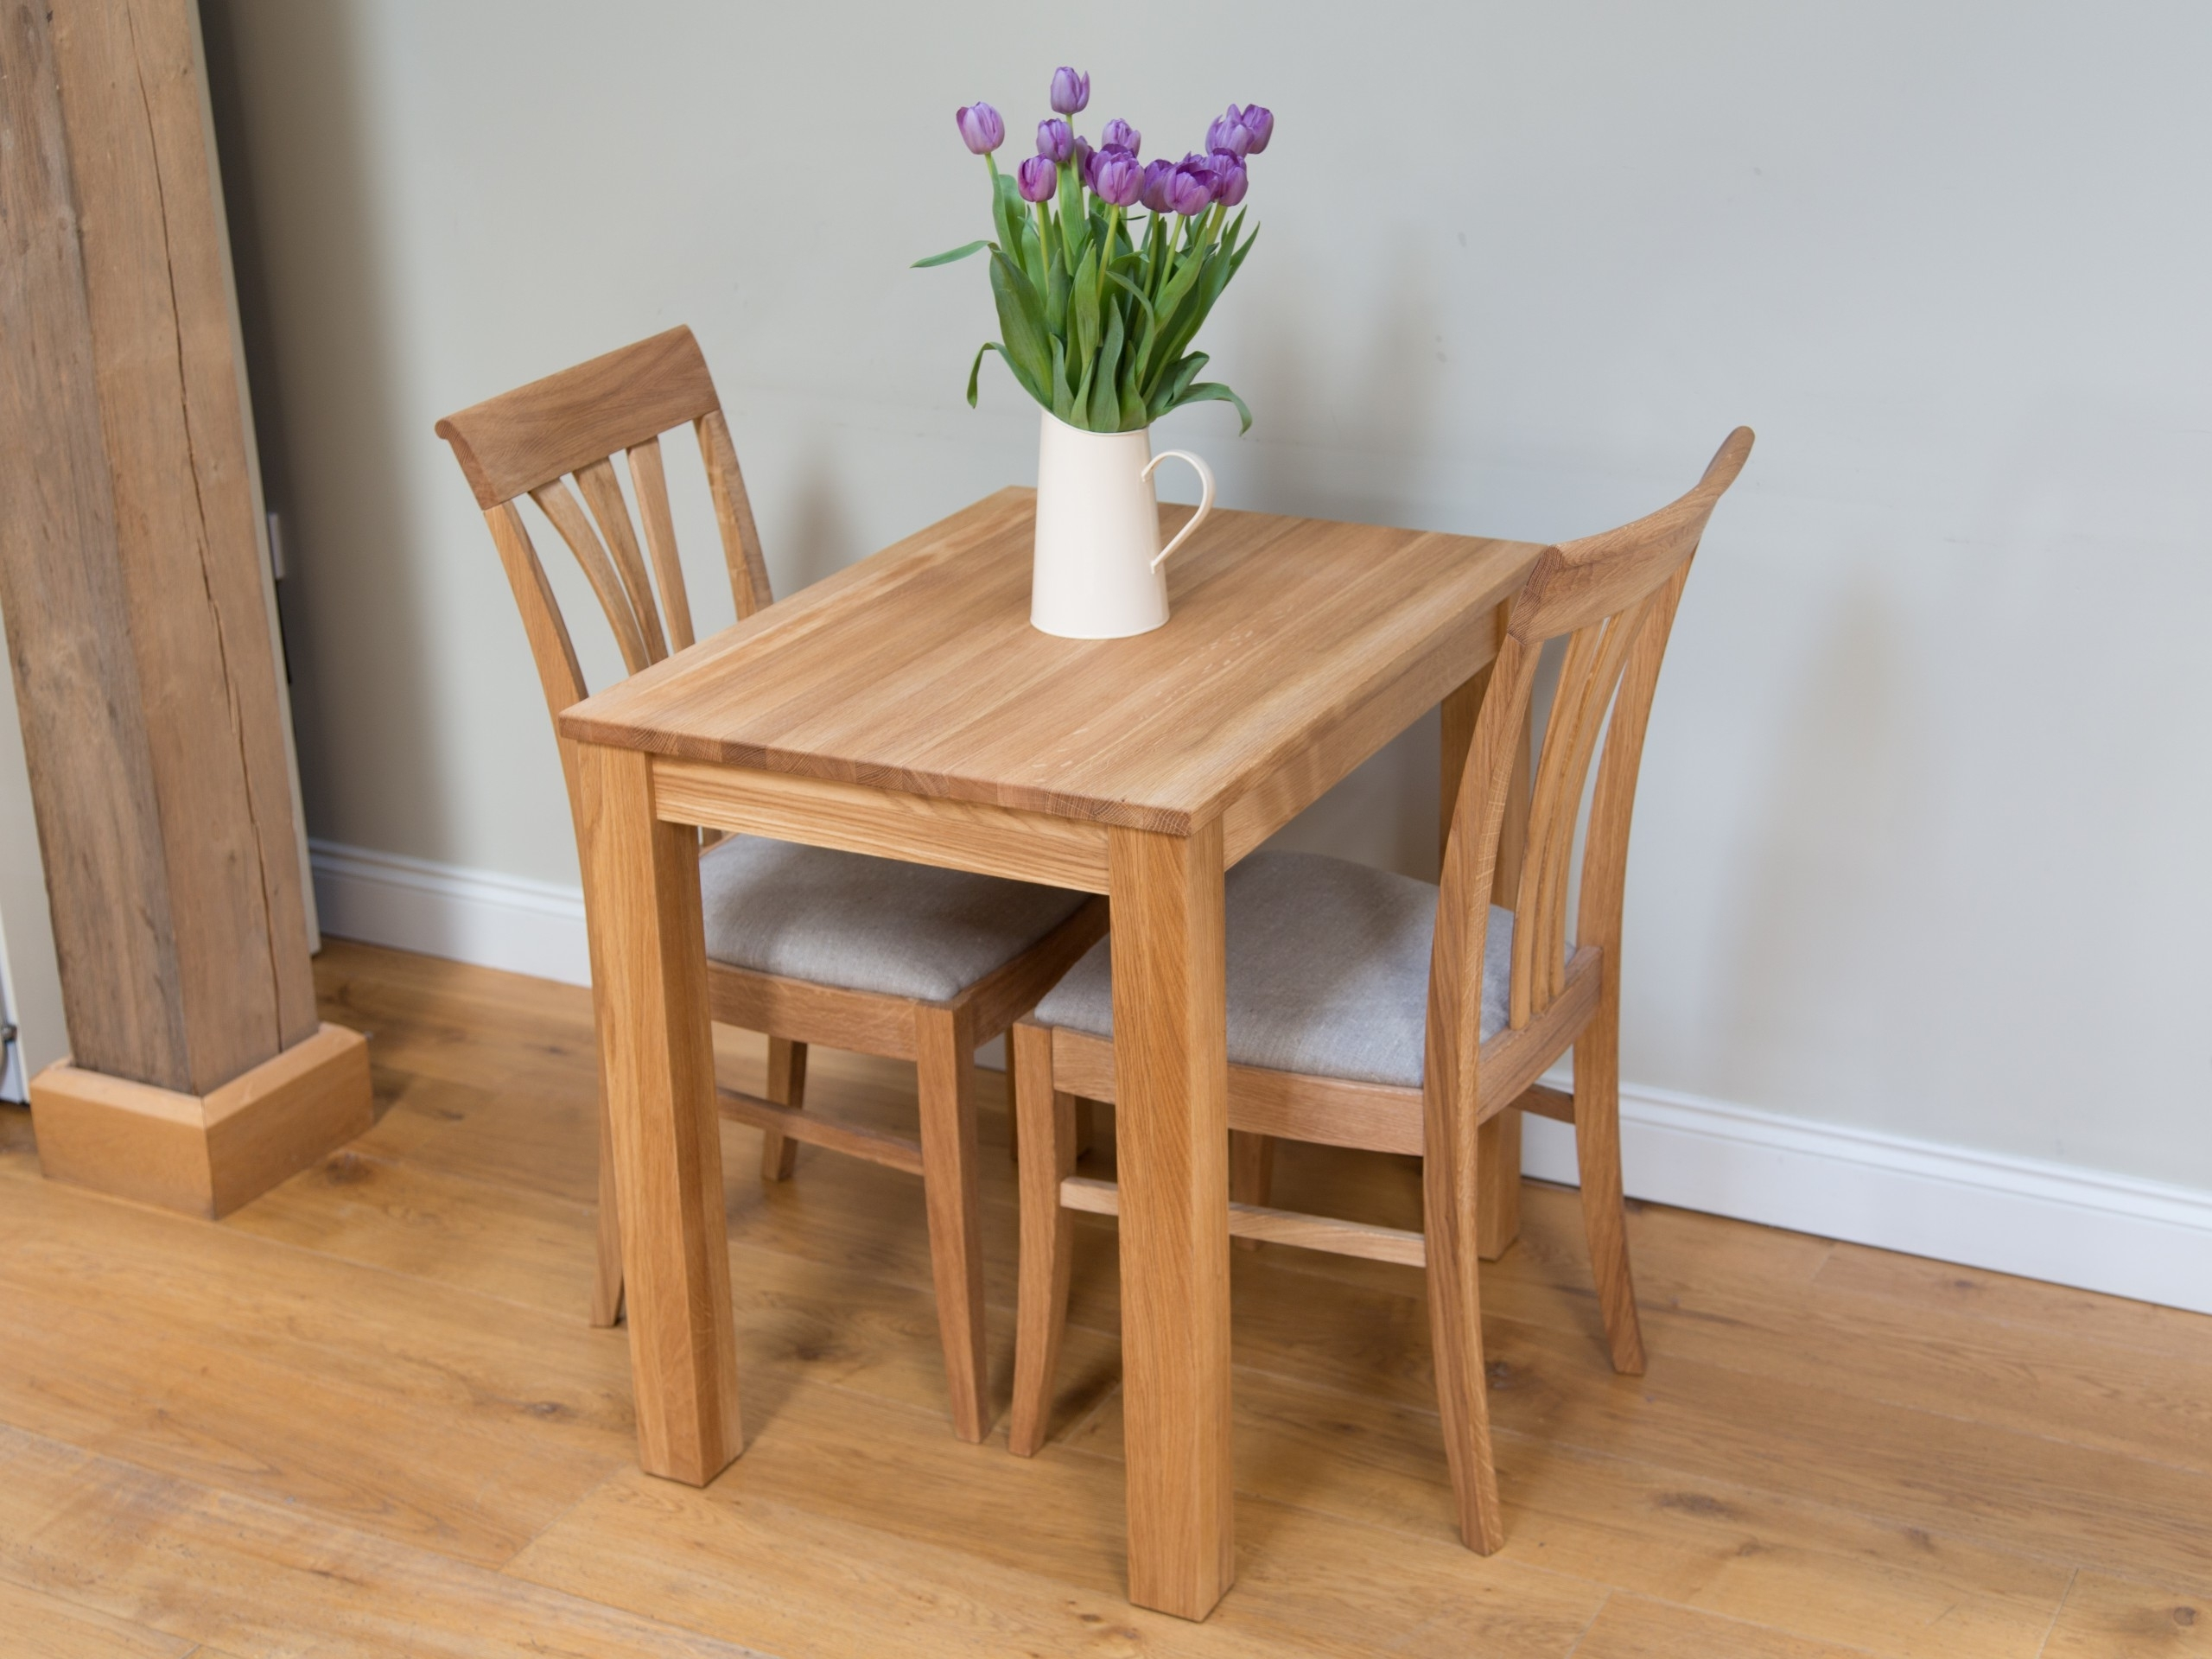 Two Person Dining Tables Intended For Widely Used Oak Kitchen Table Chair Dining Set From Top Furniture, At A Table (View 20 of 25)